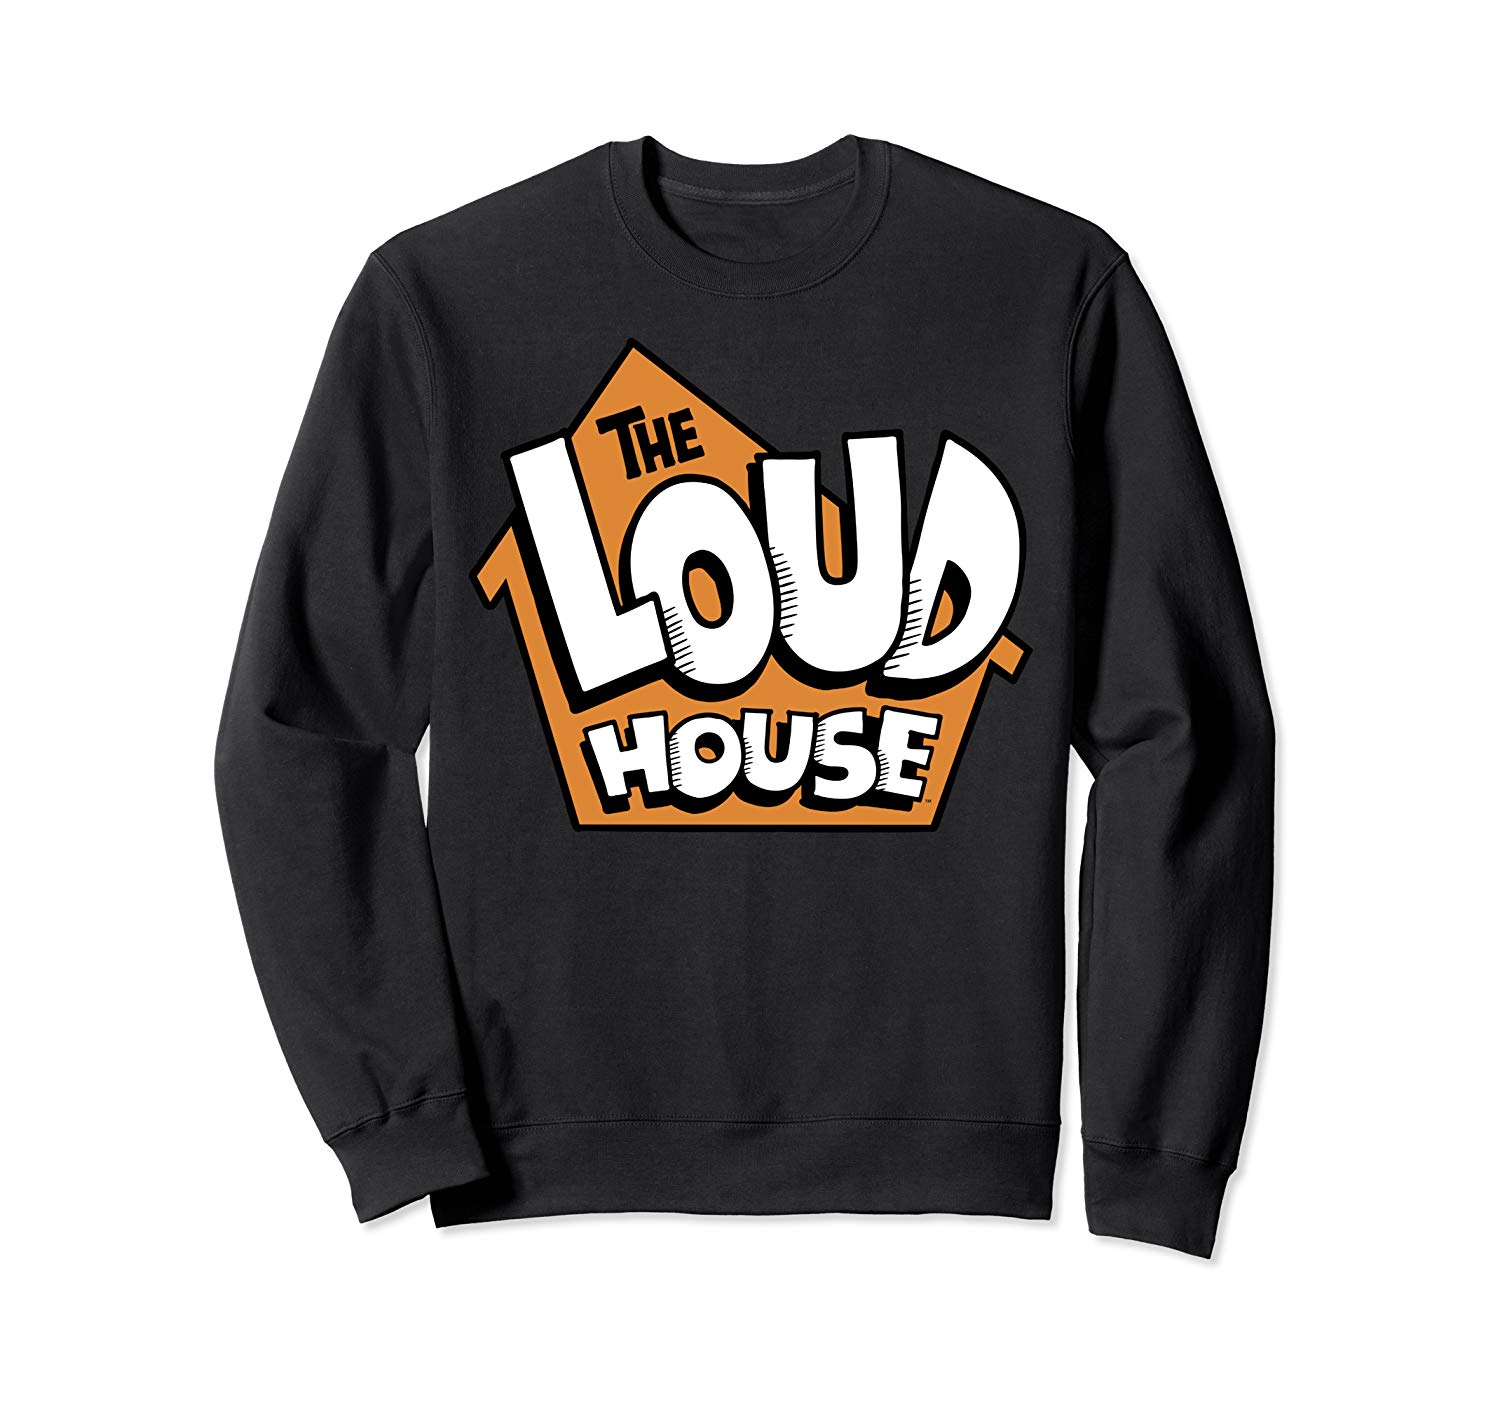 Amazon.com: The Loud House Orange House Logo Sweatshirt.